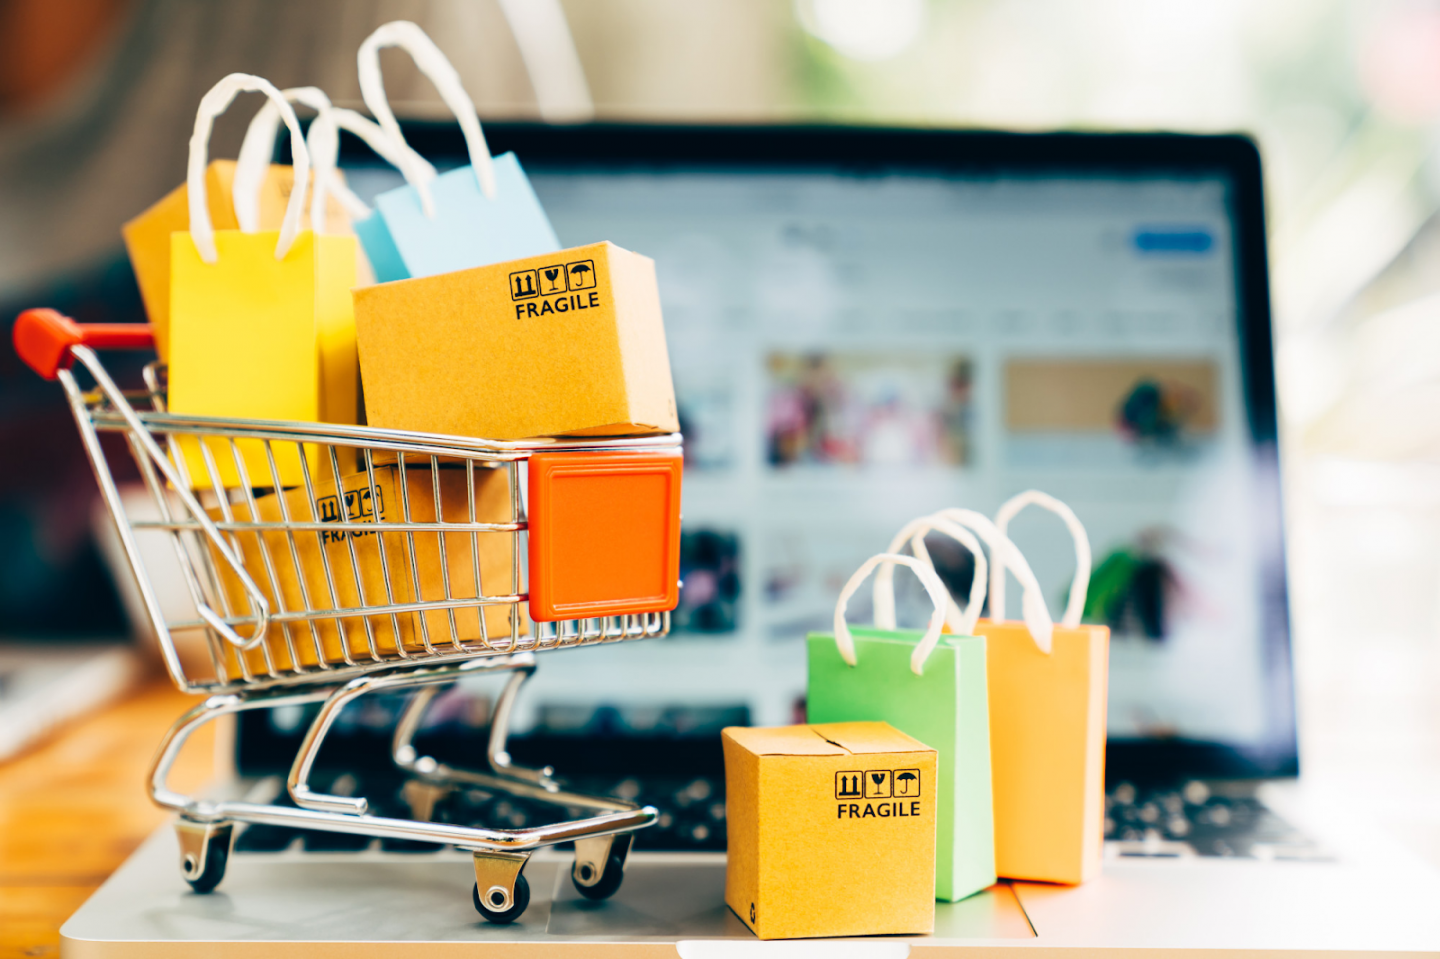 7 TIPS FOR FINDING THE BEST DEALS AT OUTLET STORES